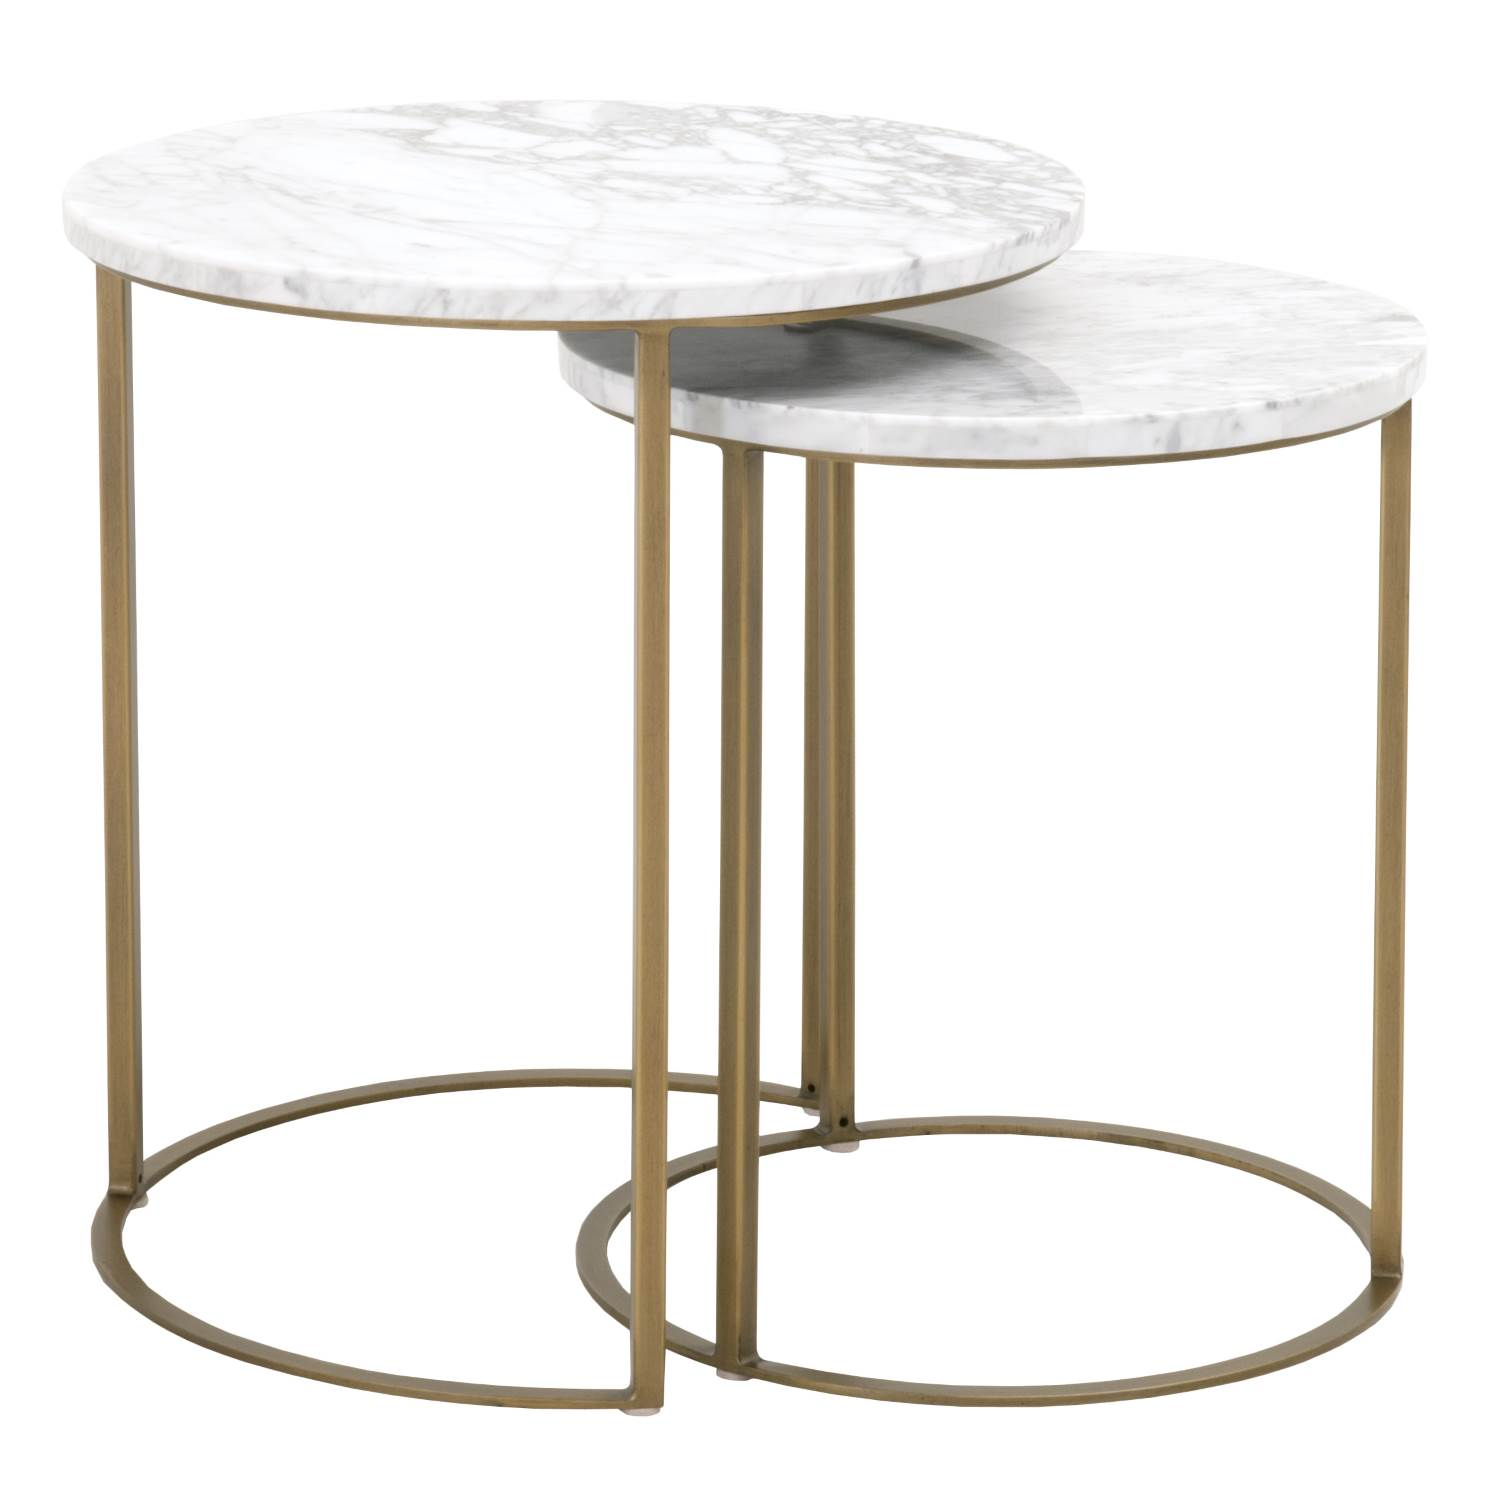 carrera round nesting accent table brushed gold outside and chair covers verizon lte tablet runner rugs wall lights metal storage target wood side iron coffee legs grey nightstand